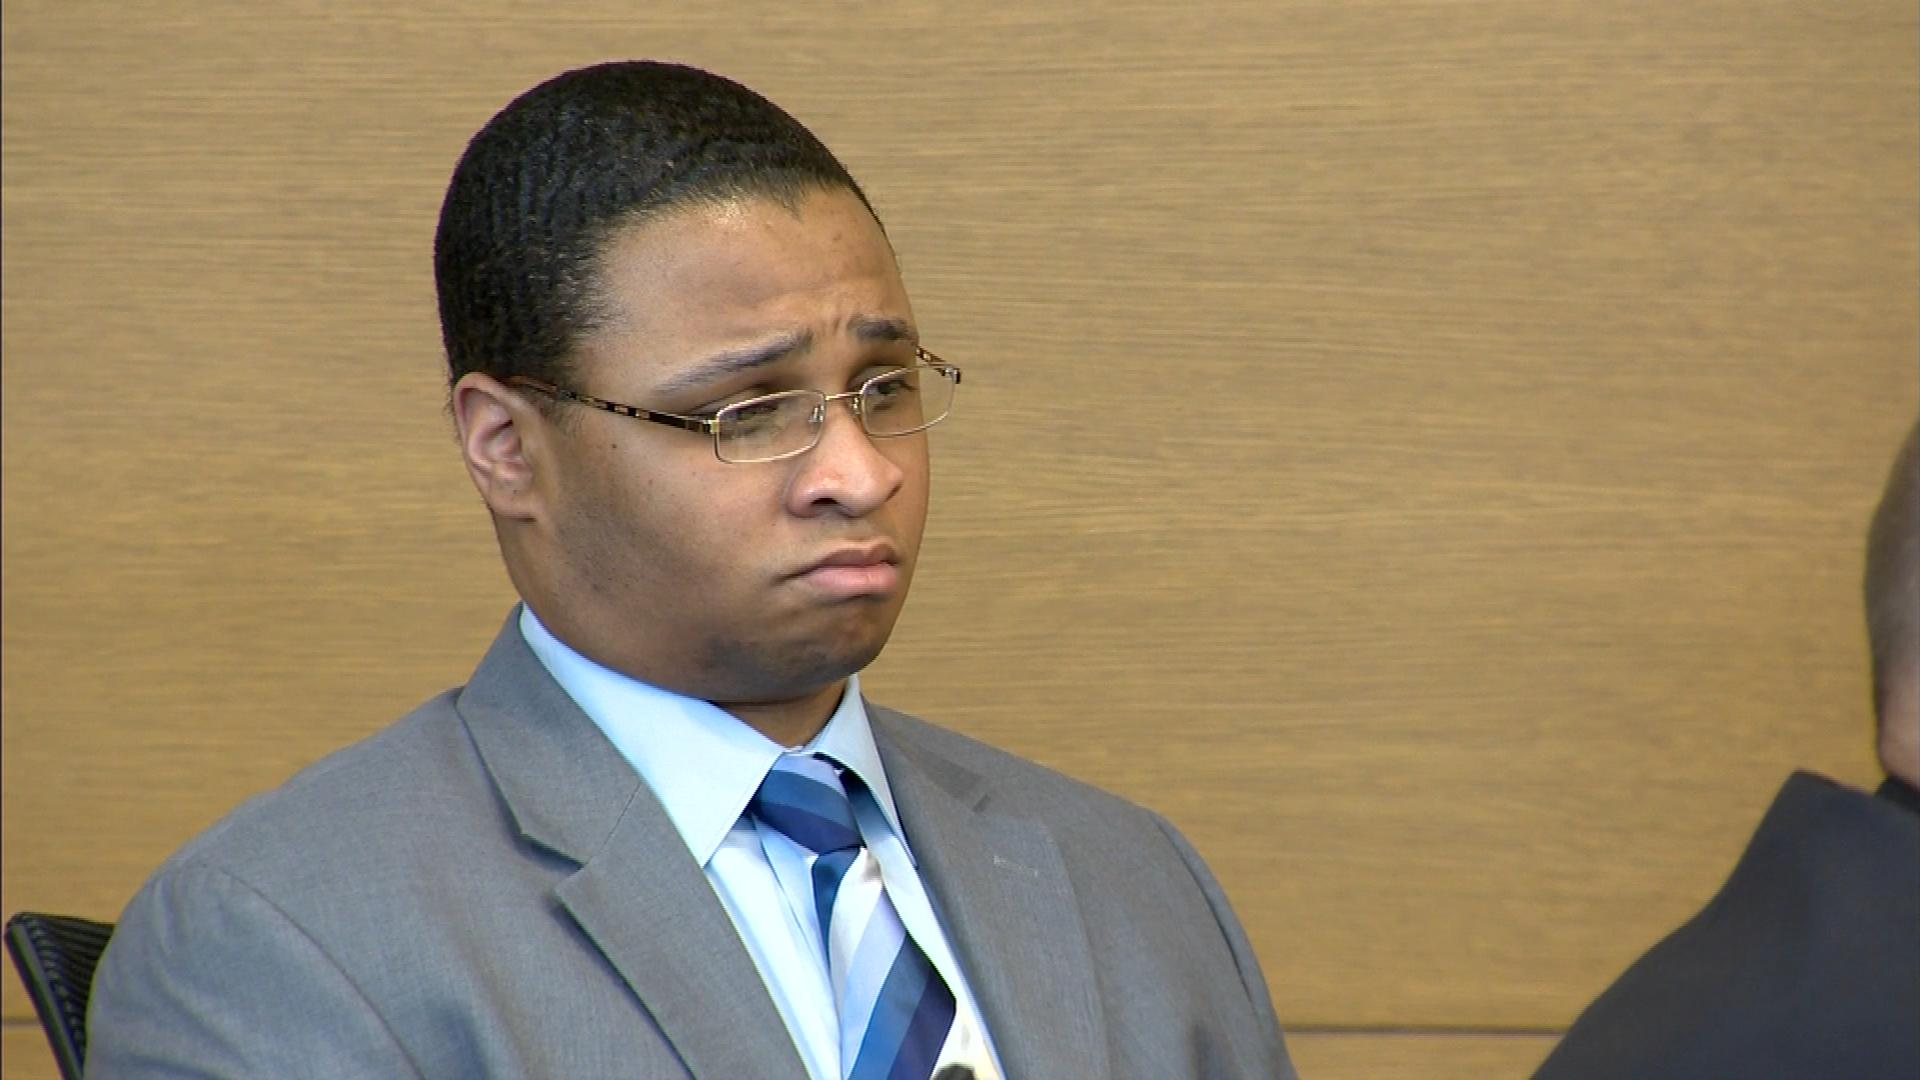 Dexter Lewis in court on Monday (credit: CBS)